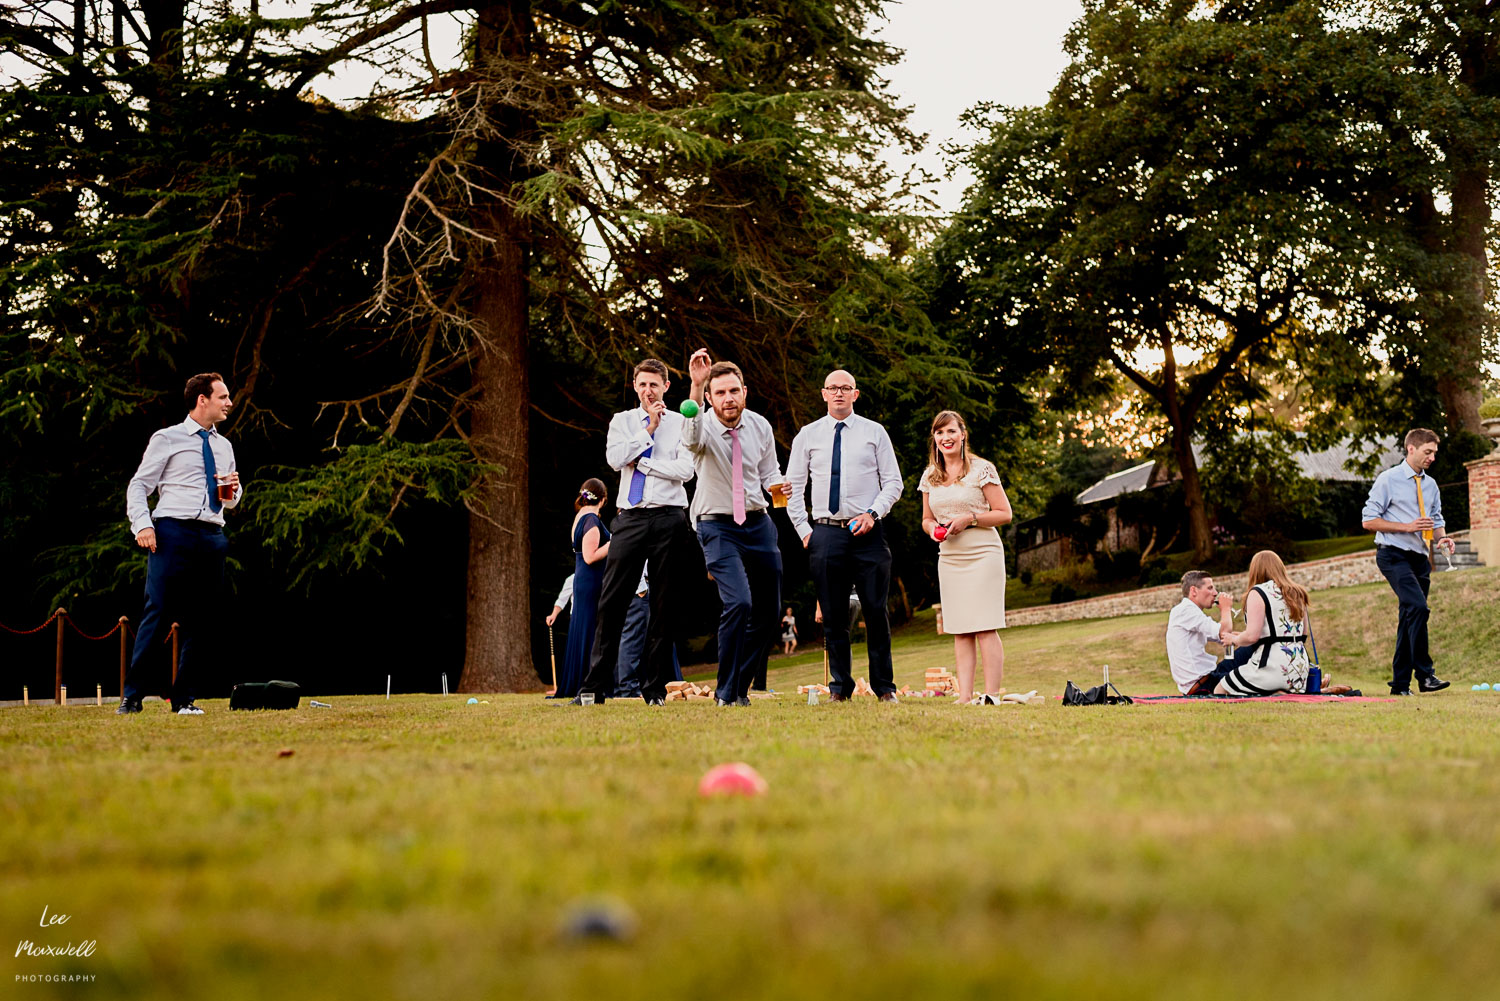 Guests playing bowls